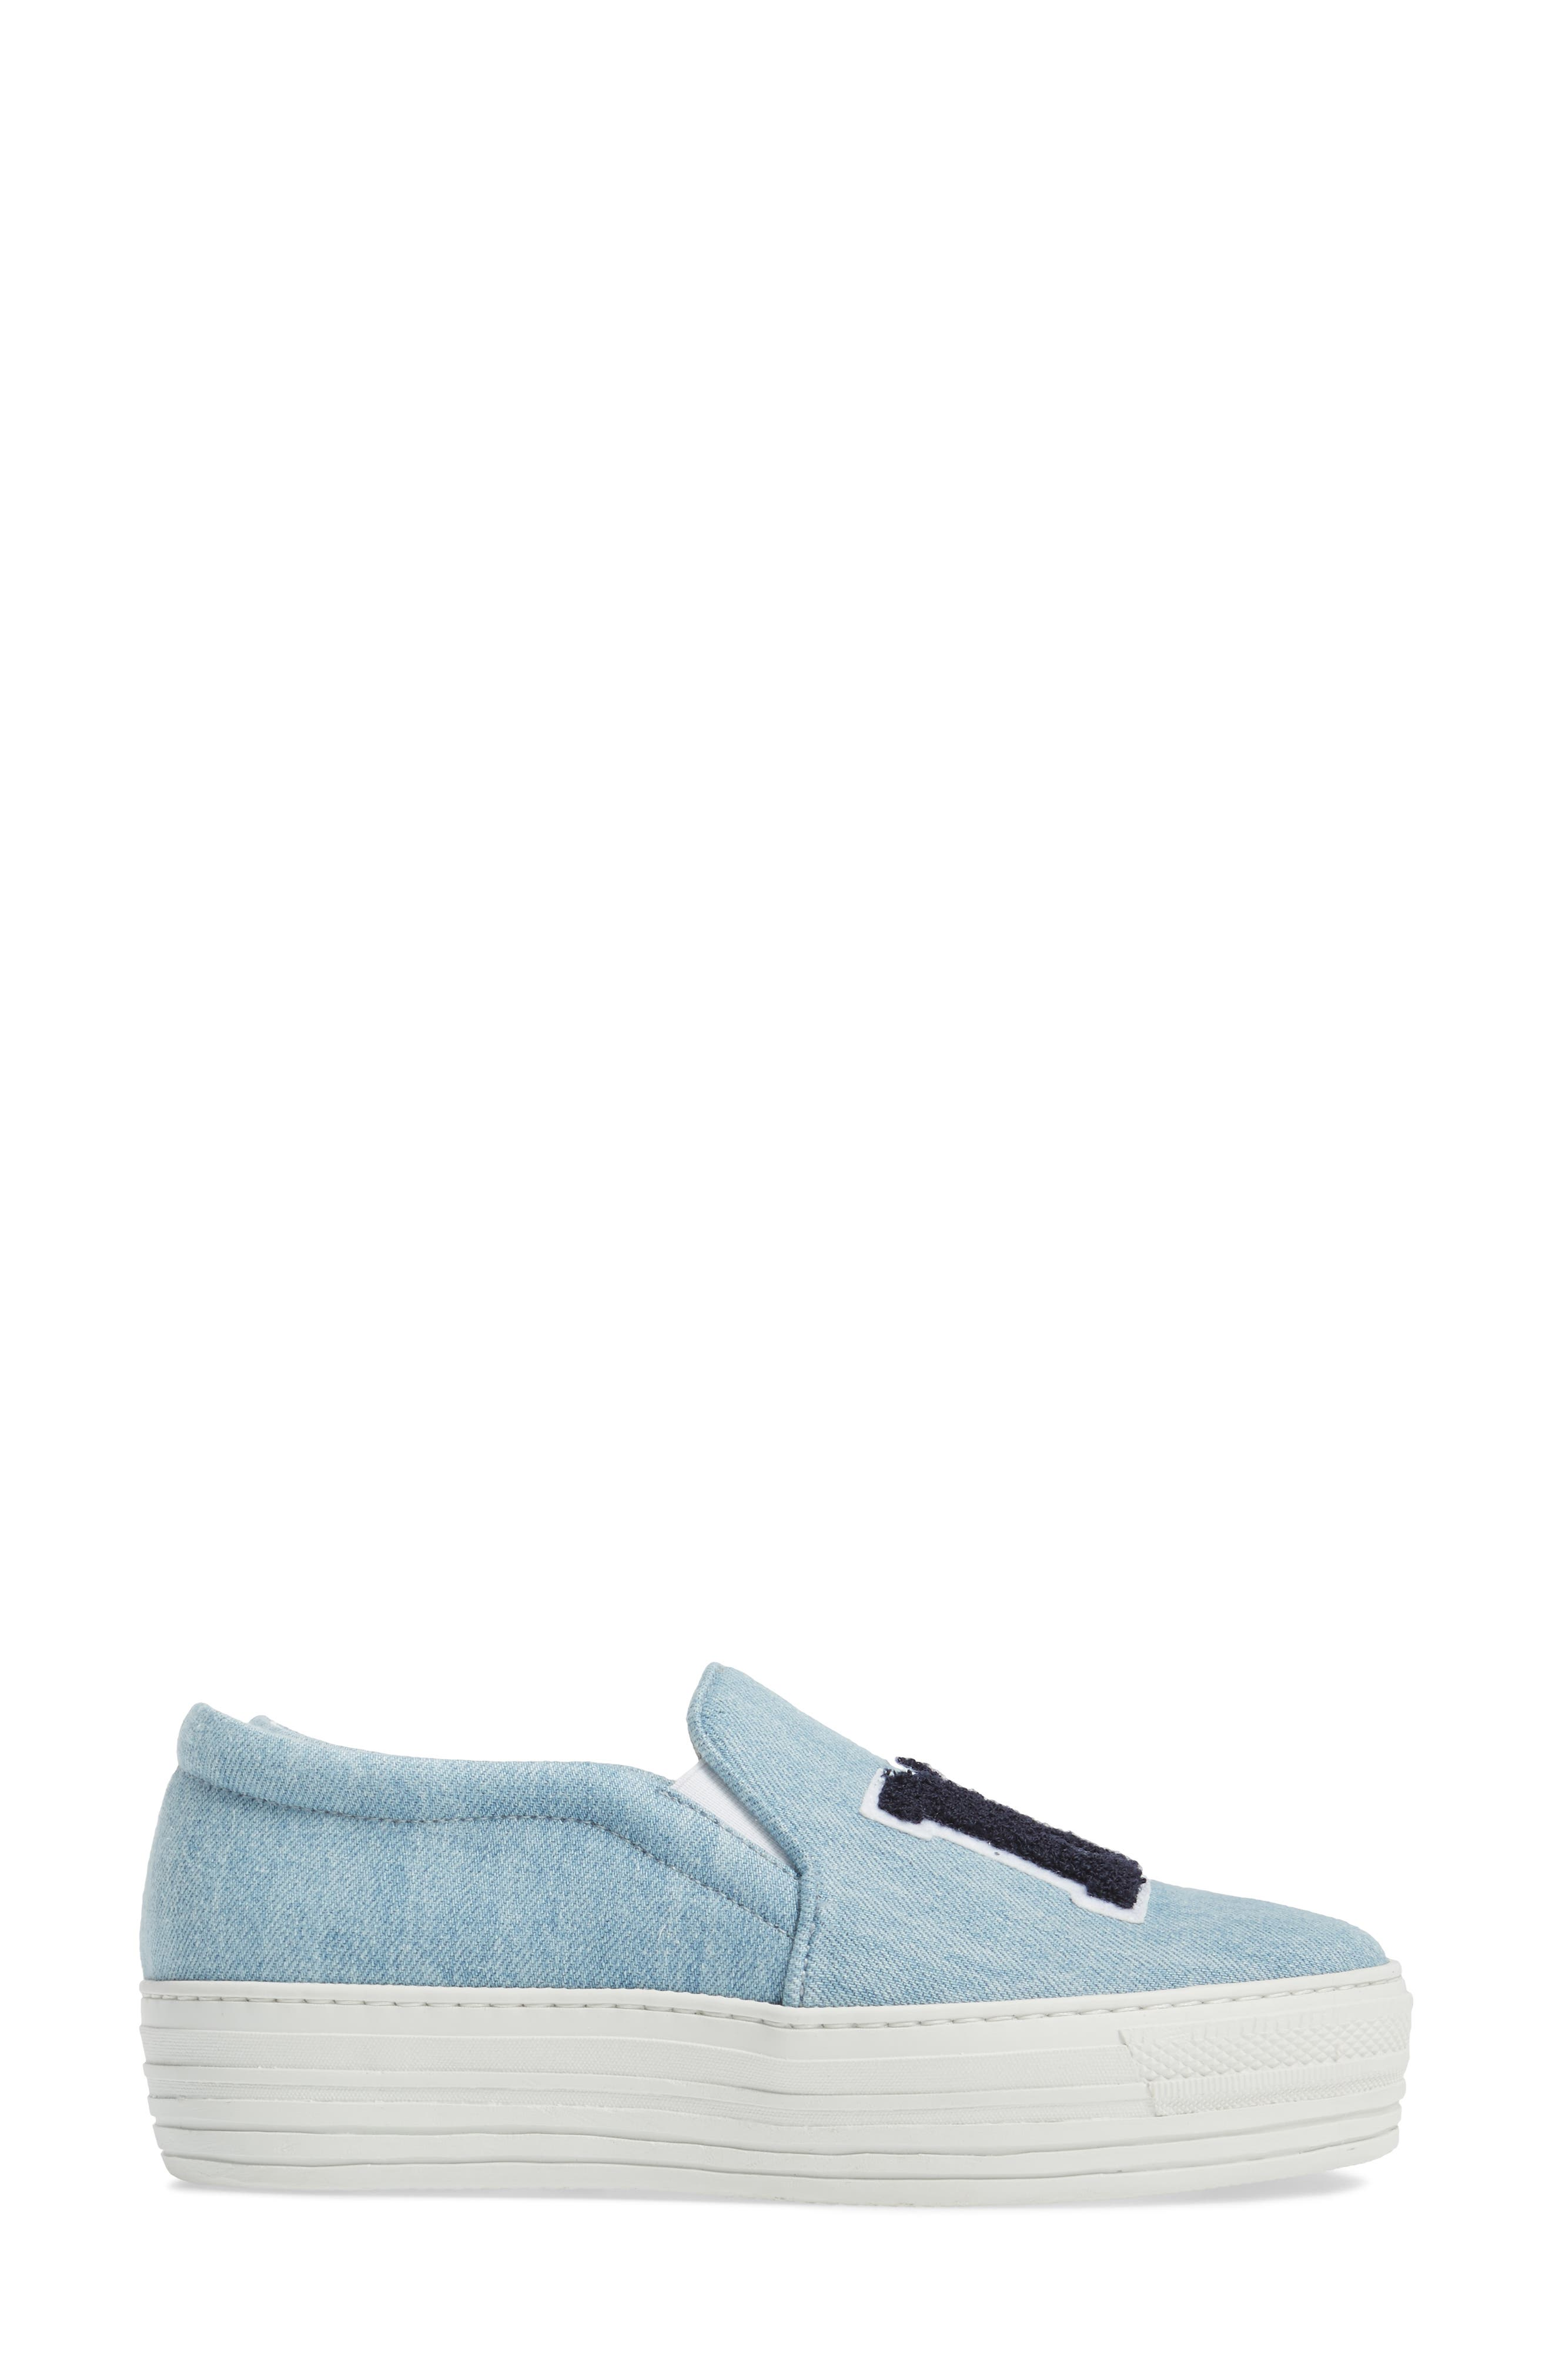 Alternate Image 4  - Joshua Sanders Slip-On Sneaker (Women)